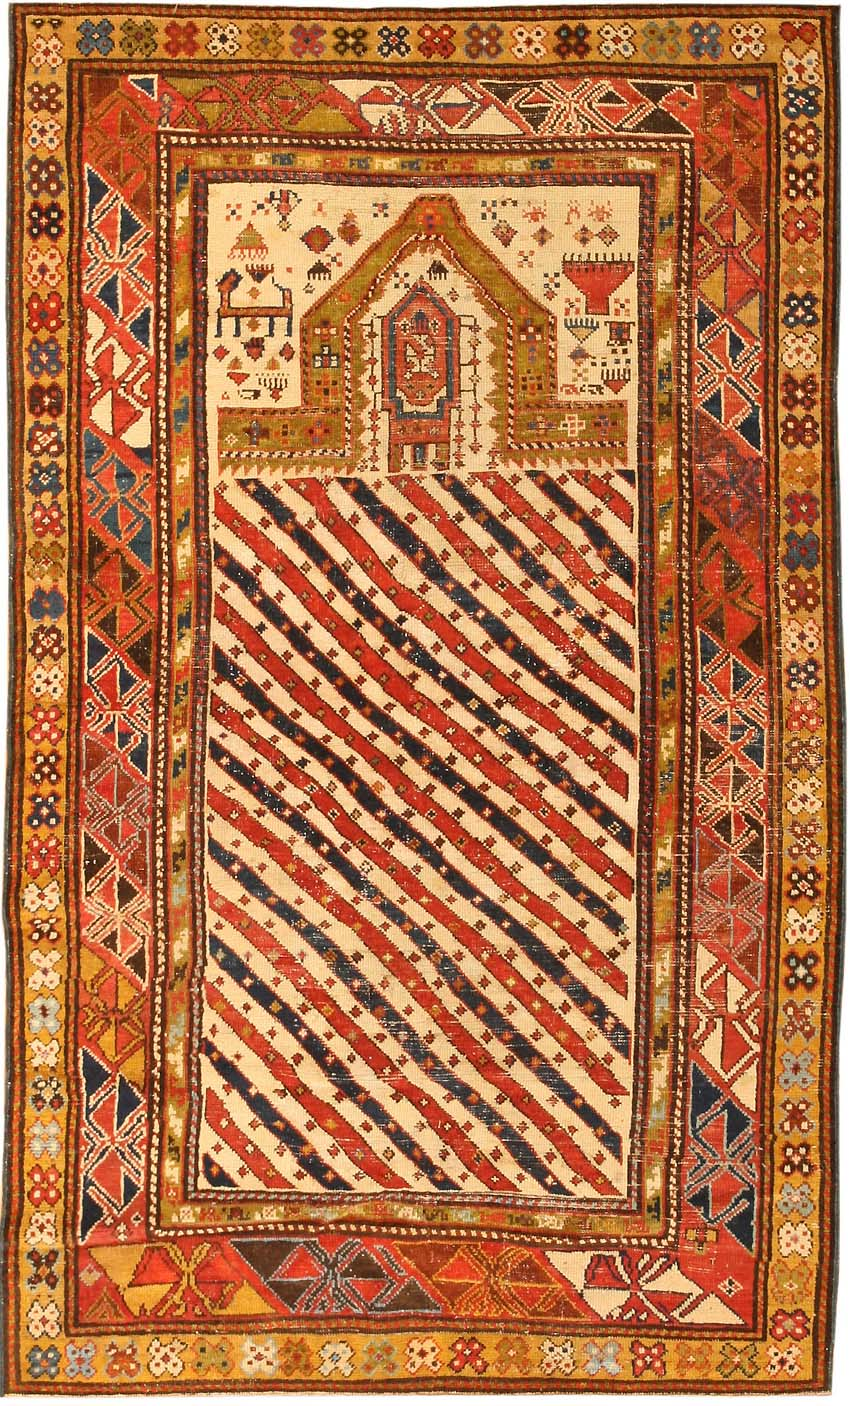 Antique Dagestan Prayer Rug Late Nineth Century This Is Exceptional For The Quality Of Its Color And Design